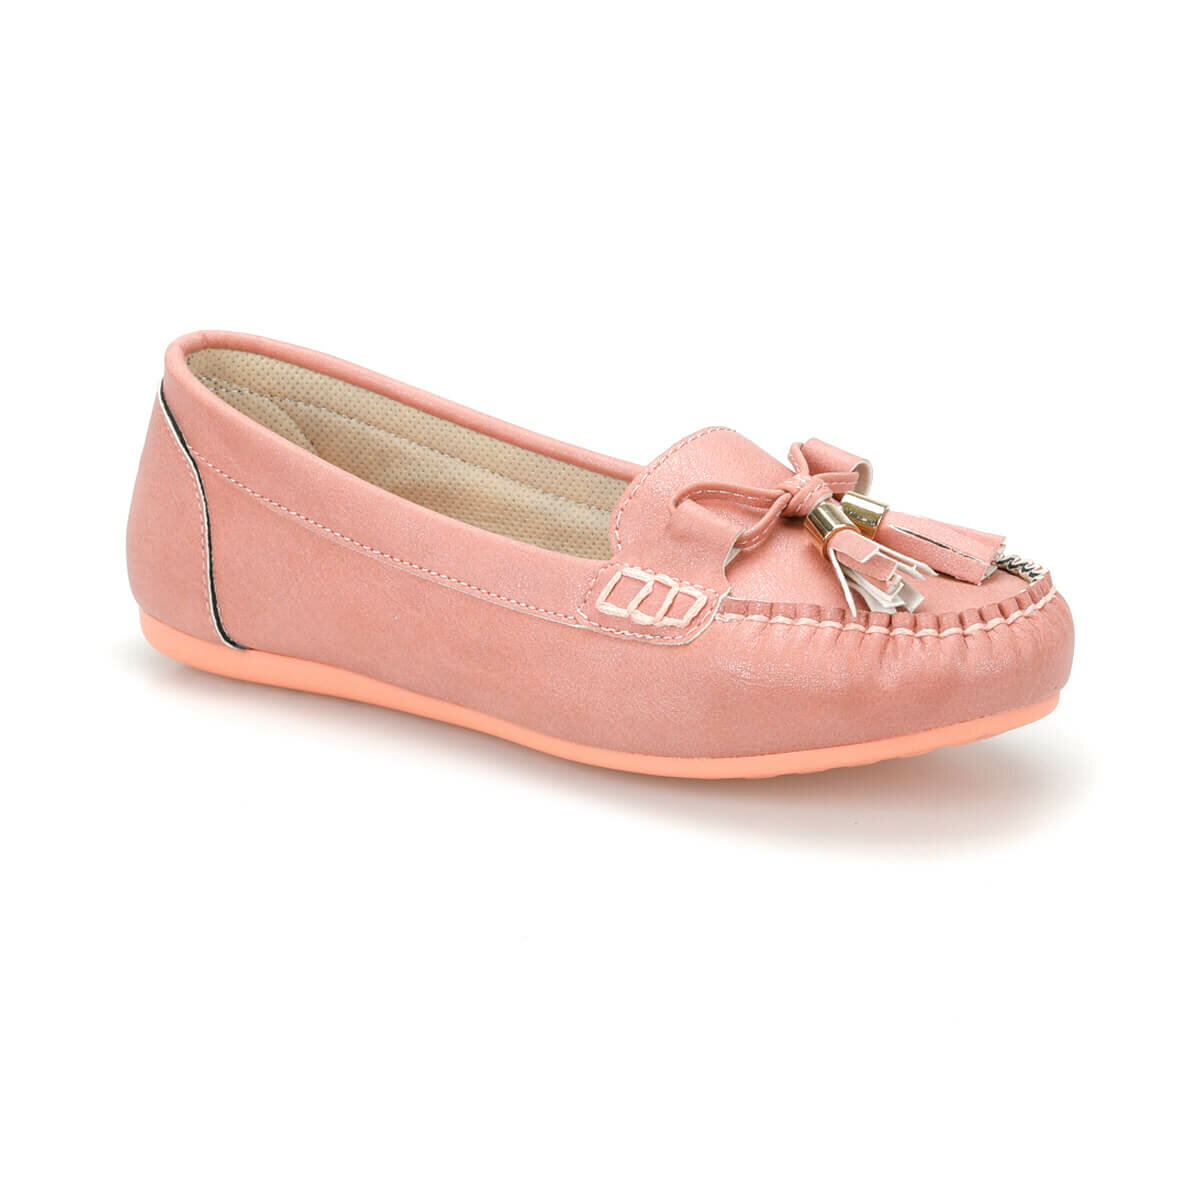 FLO DS19033 Powder Women 'S Loafer Shoes Miss F